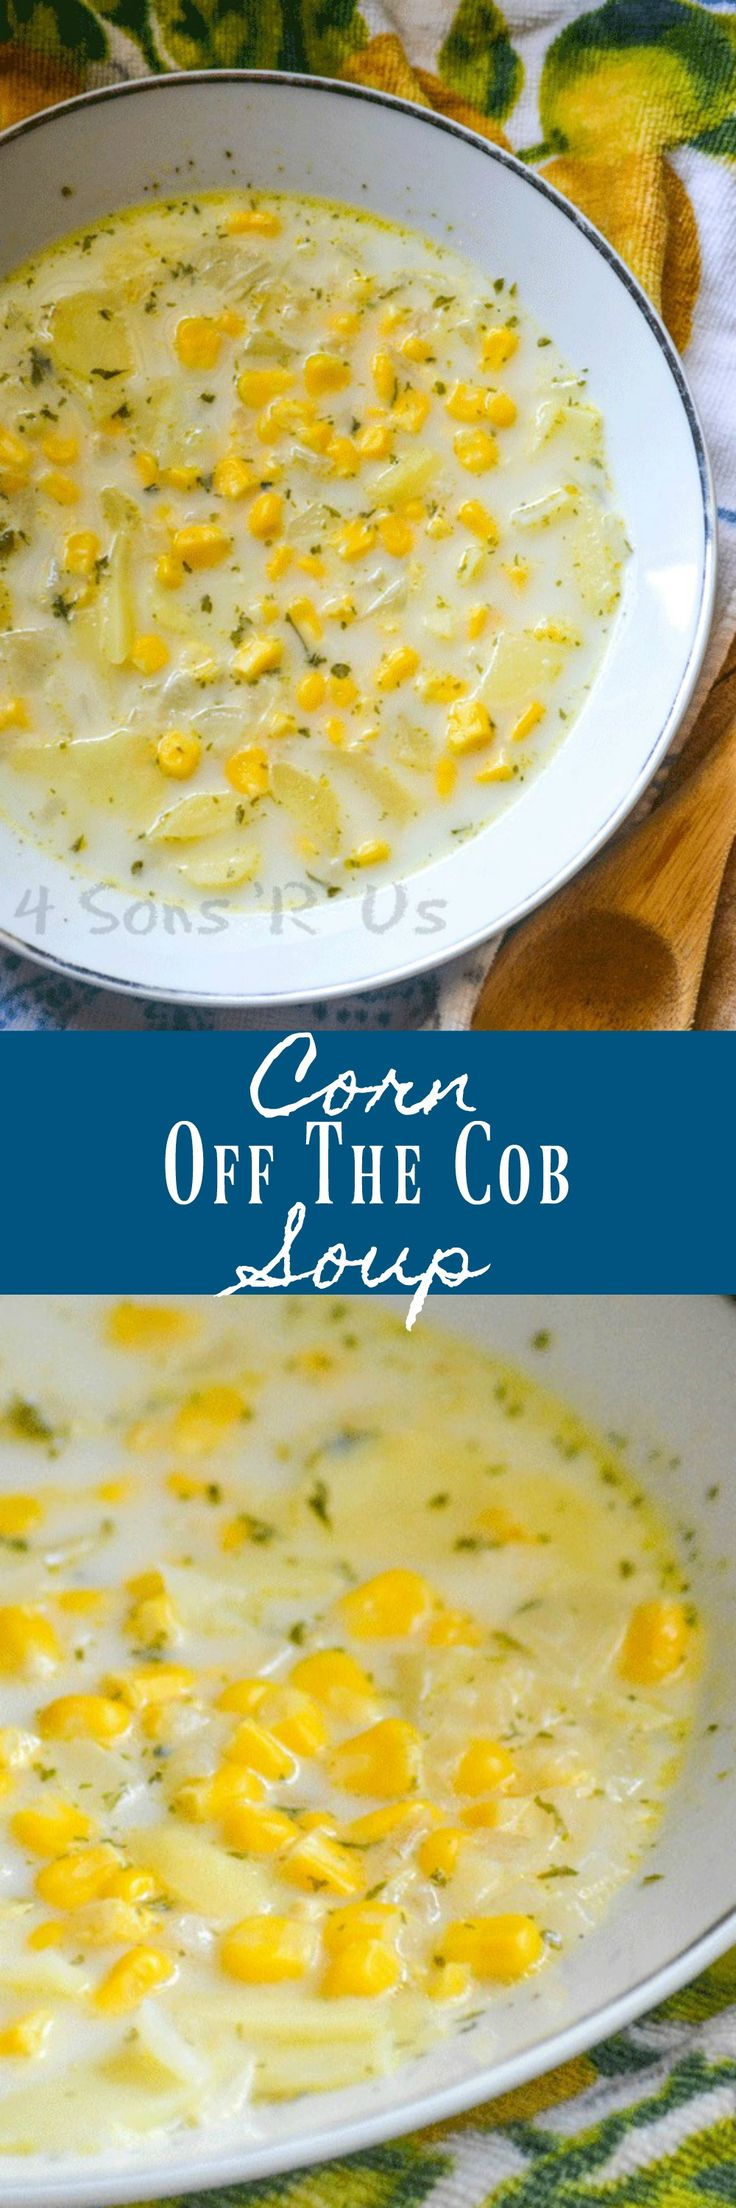 There's nothing better than biting into a buttered, salted corn on the cob at a Summer meal. Ditch the juices running down your chin, but enjoy those same flavors you love in this yummy Corn Off The Cob Soup.